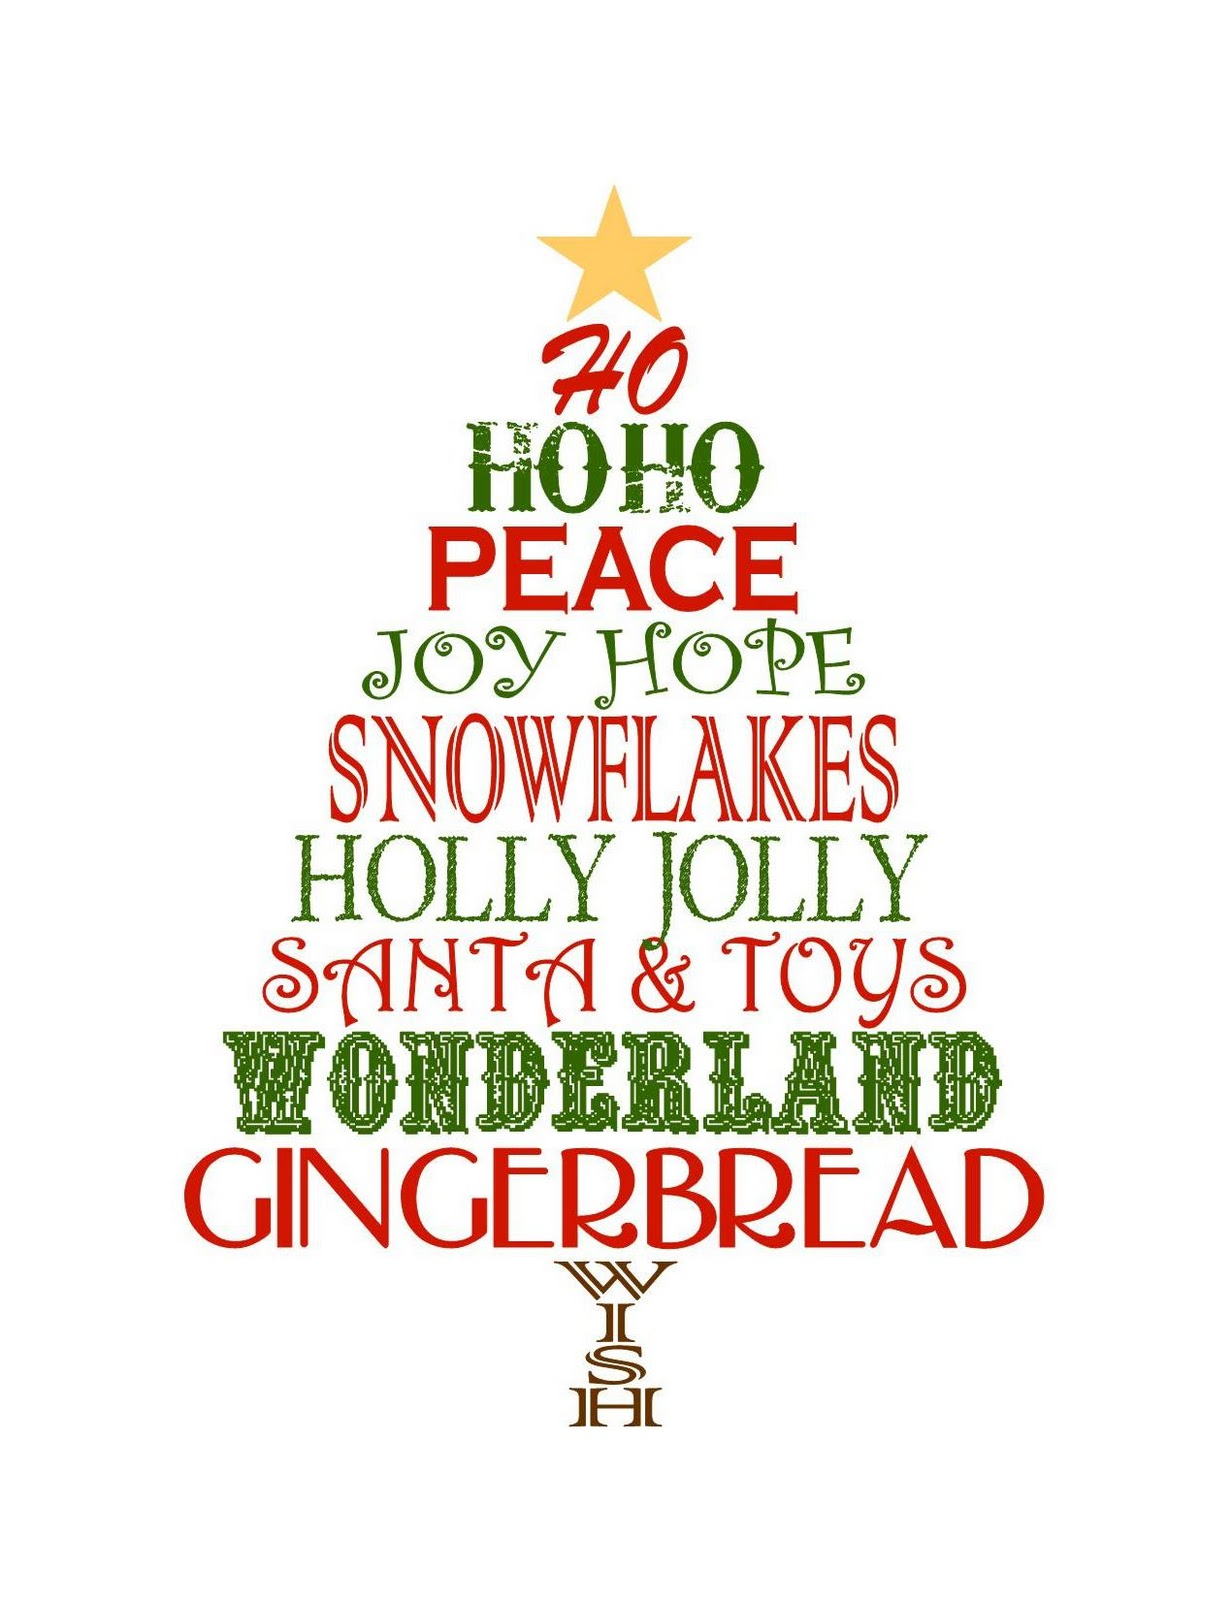 free christmas printables to use as decor - Free Christmas Pictures To Print 2